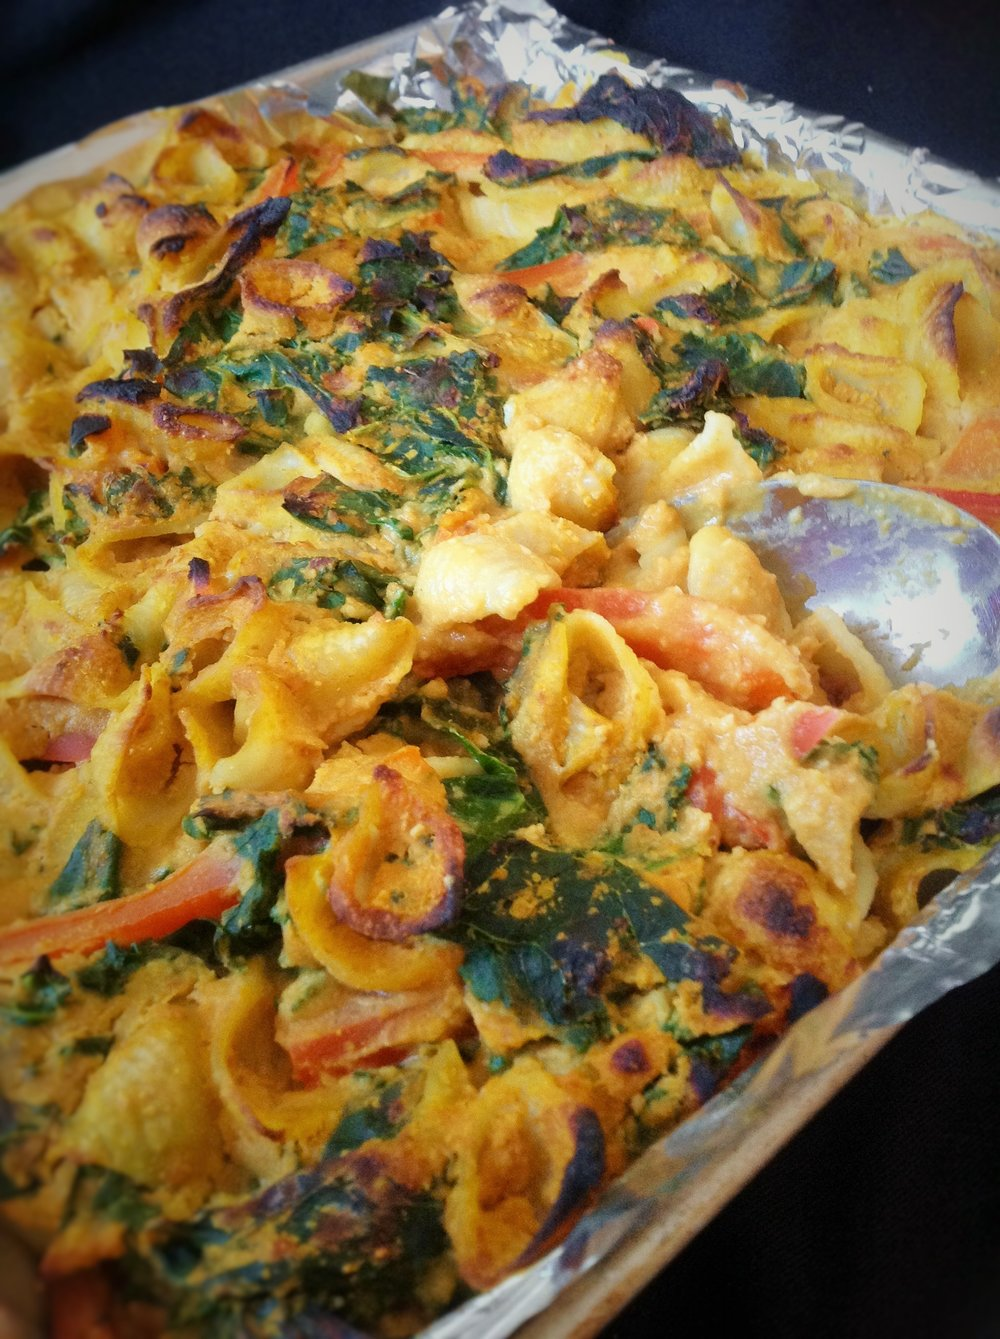 Cheezy Kale Pasta Bake - Healthy, Plant-Based, Oil-Free, Dairy-Free, Vegan Cheese Comfort Food Dinner Recipe